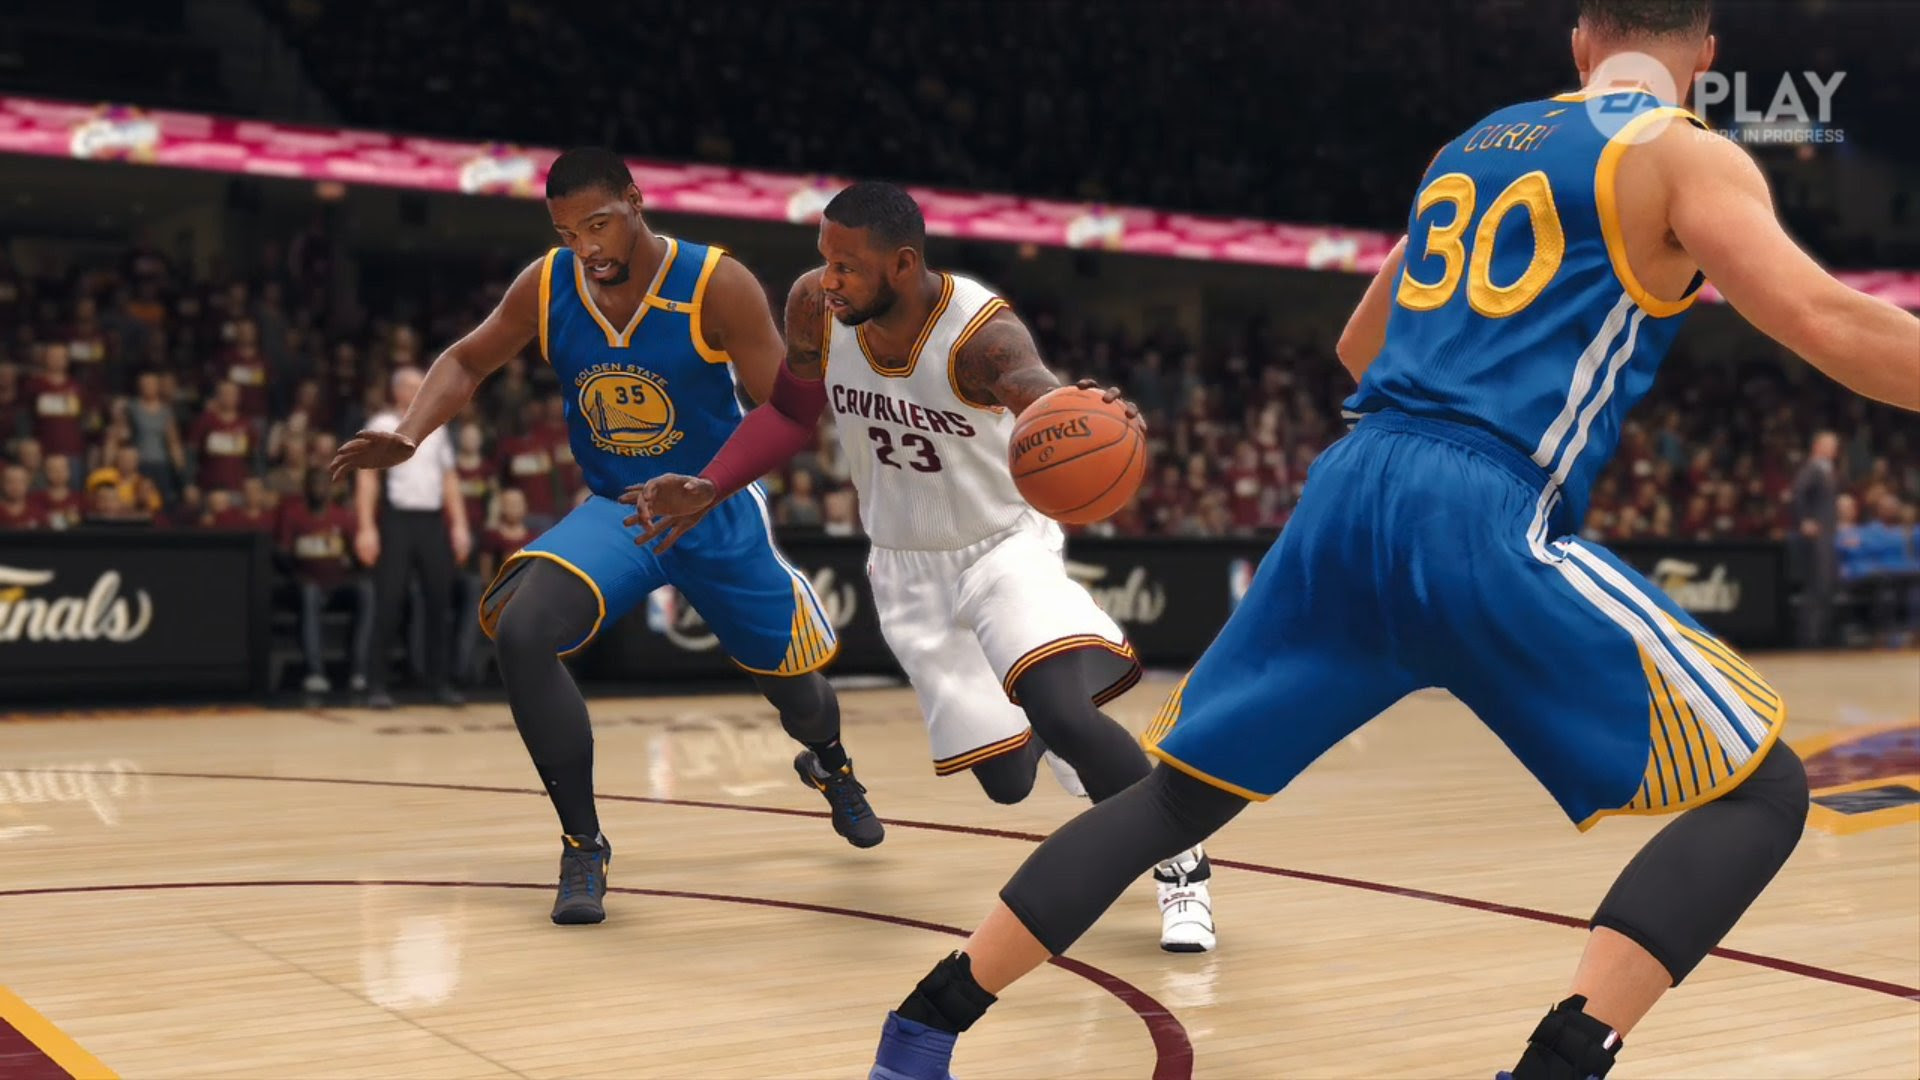 EA is still trying to make basketball games for some reason with NBA Live 18 screenshot